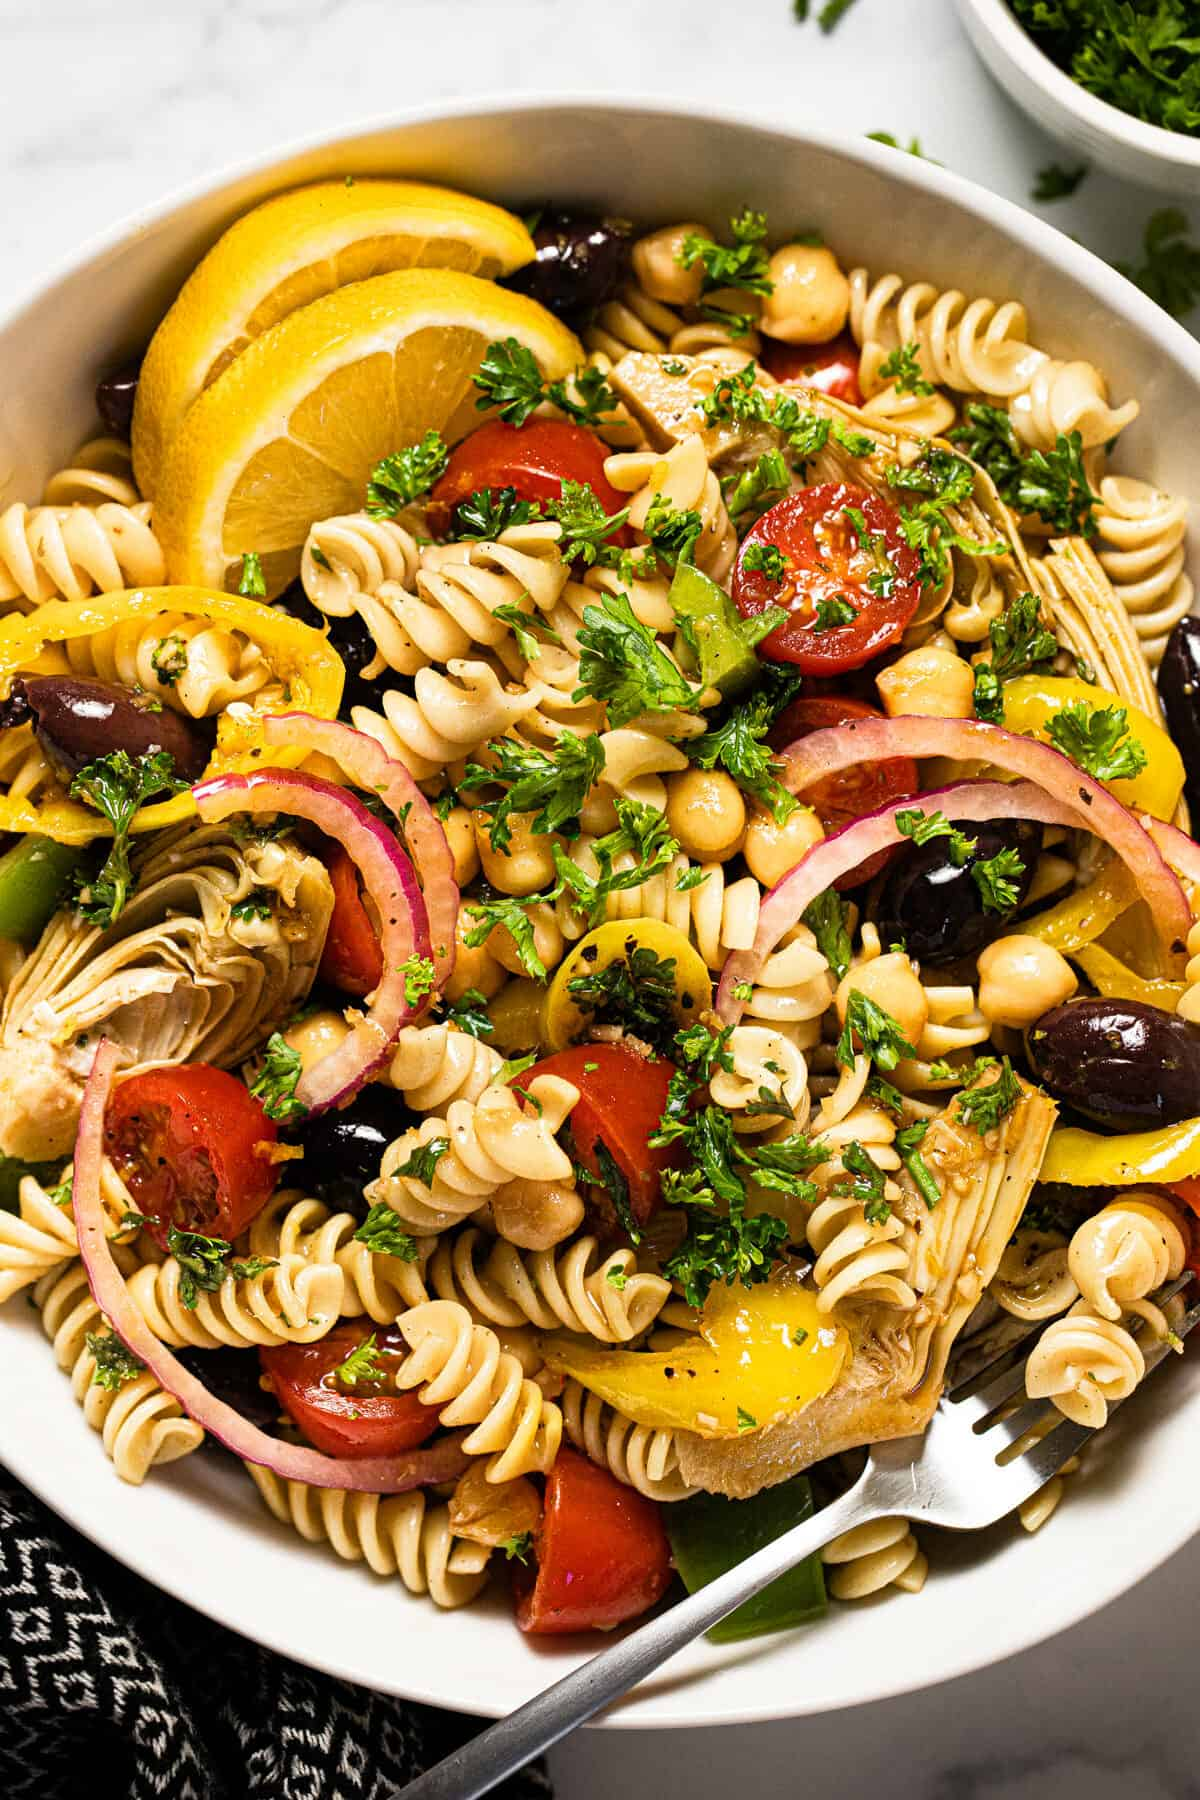 Overhead shot of a bowl of vegan pasta salad garnished with chopped parsley